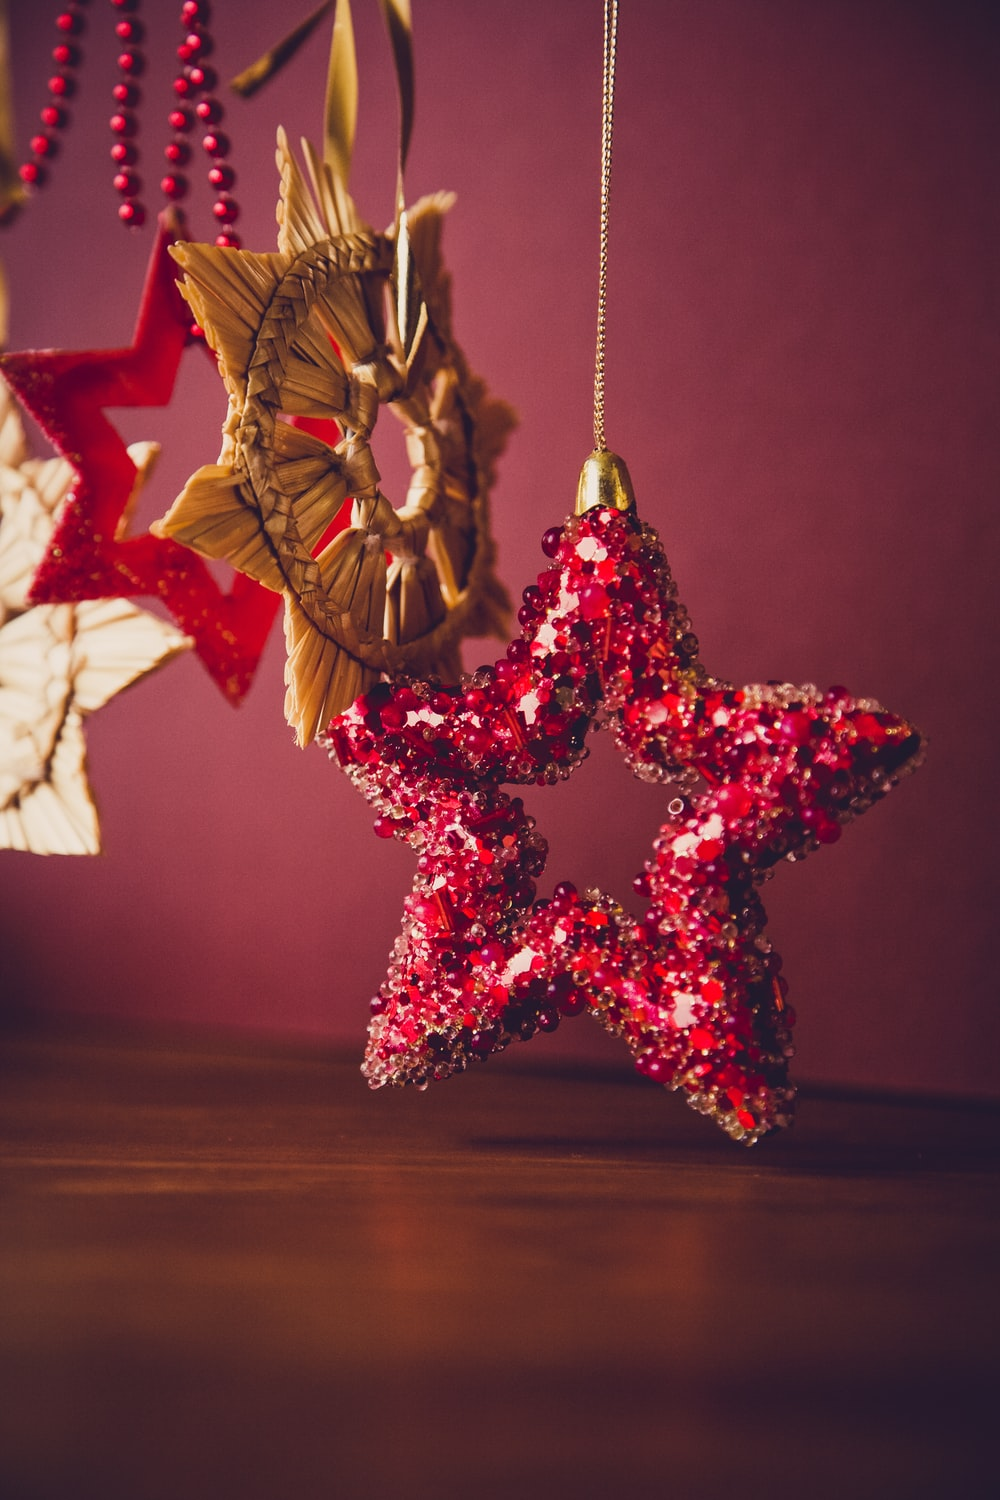 xmas star pictures download free images on unsplash